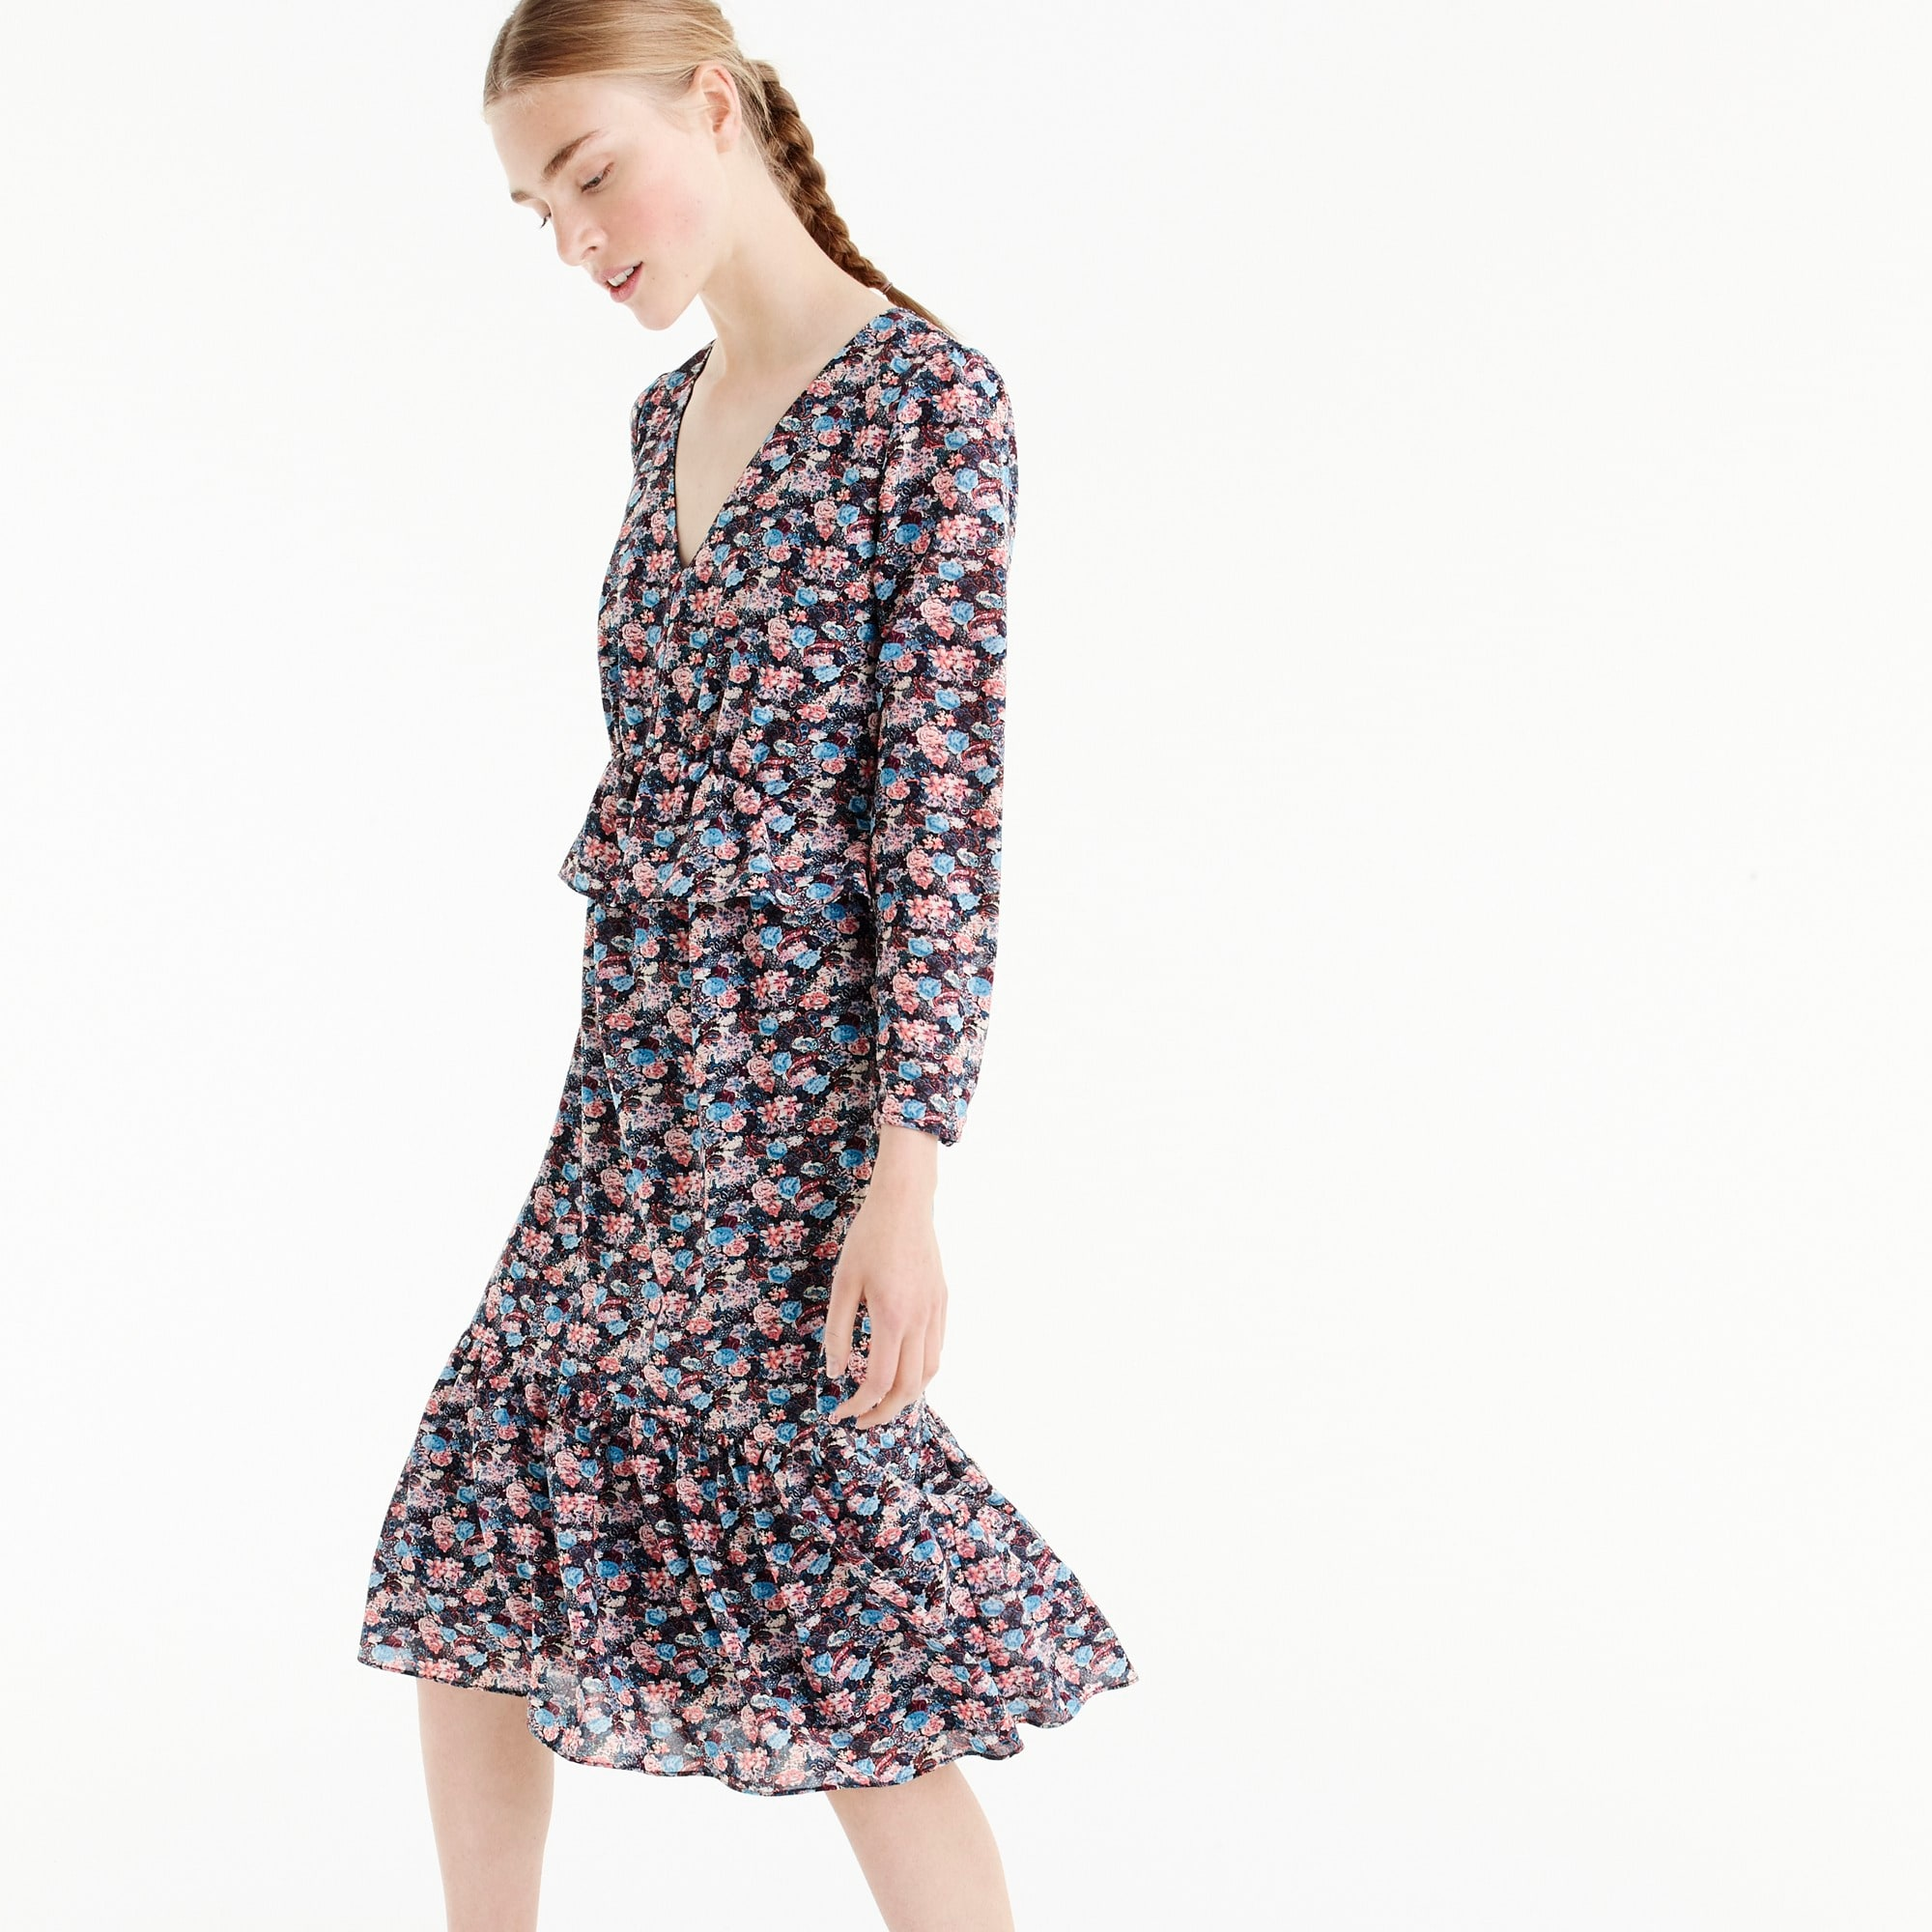 Ruffle-hem dress in paisley floral